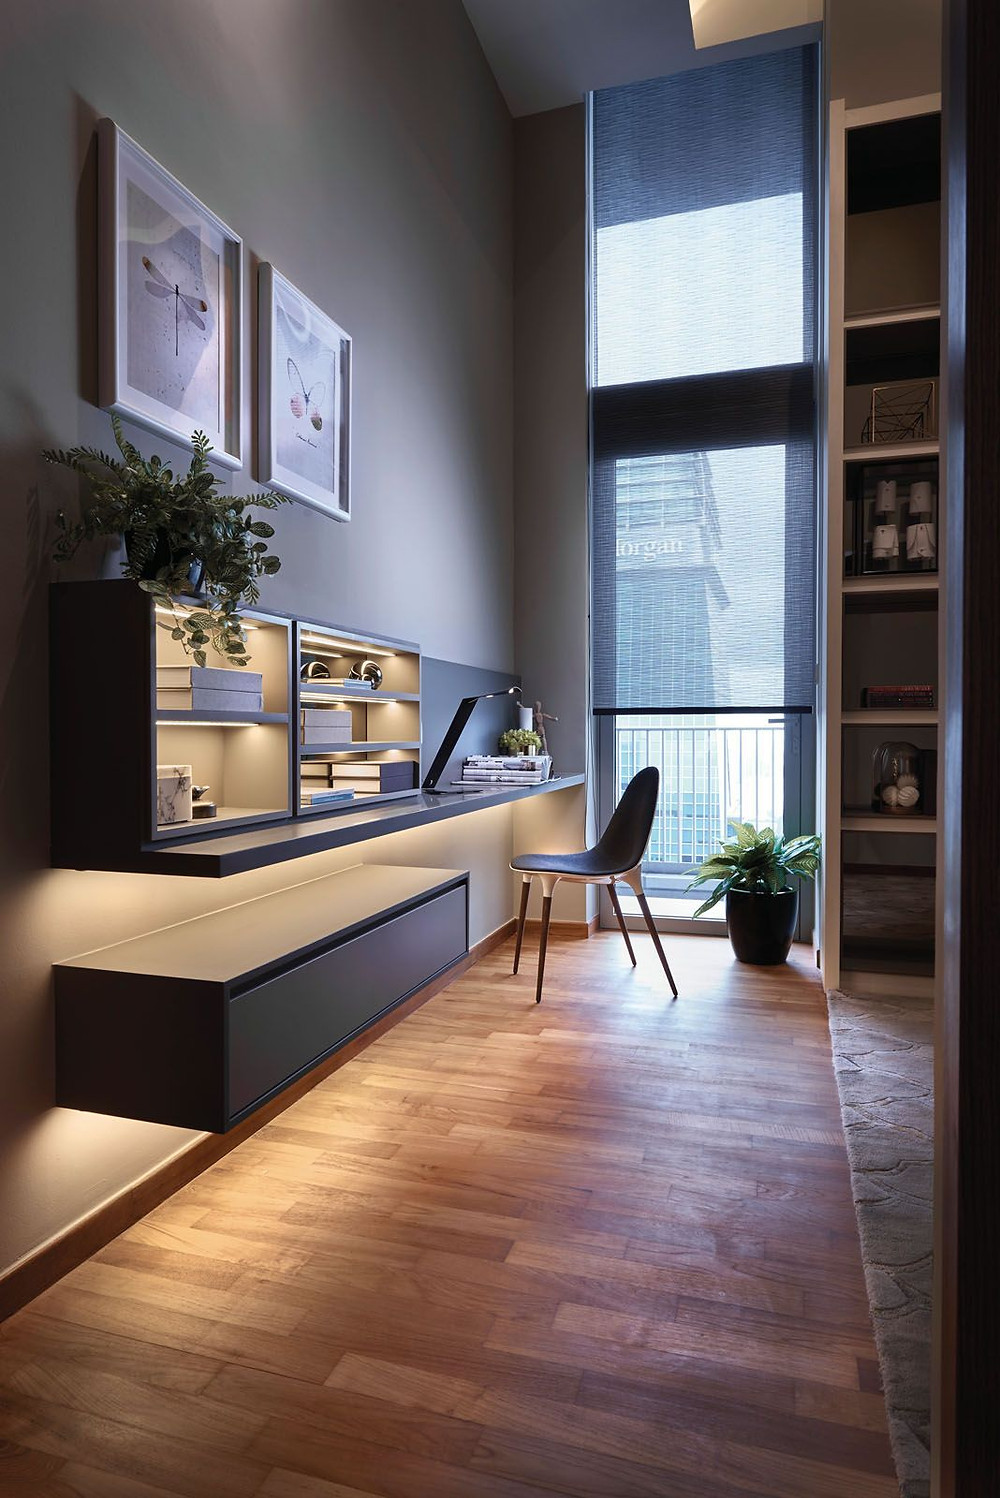 The stylish study area in the bedroom of a penthouse project, for which Designworx Interior Consultant won Best Penthouse Project at Tatler Design Awards 2020